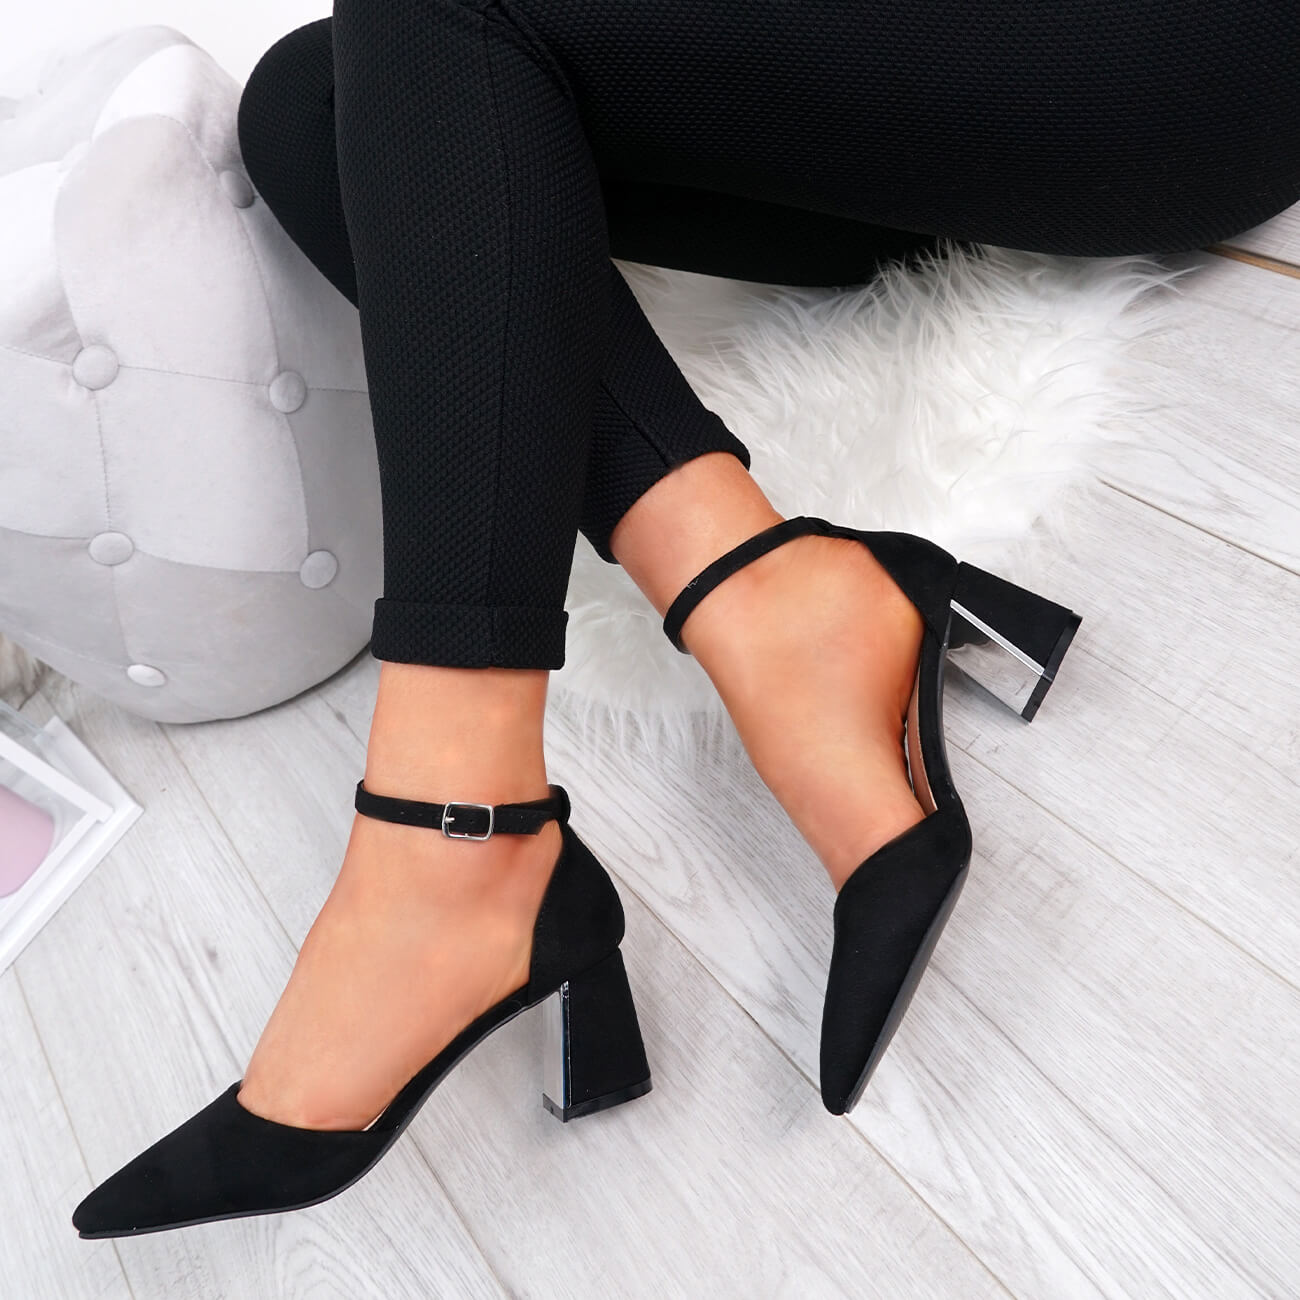 WOMENS-LADIES-ANKLE-STRAP-POINTED-HIGH-BLOCK-HEEL-PUMPS-COURT-SHOES-SIZE thumbnail 10